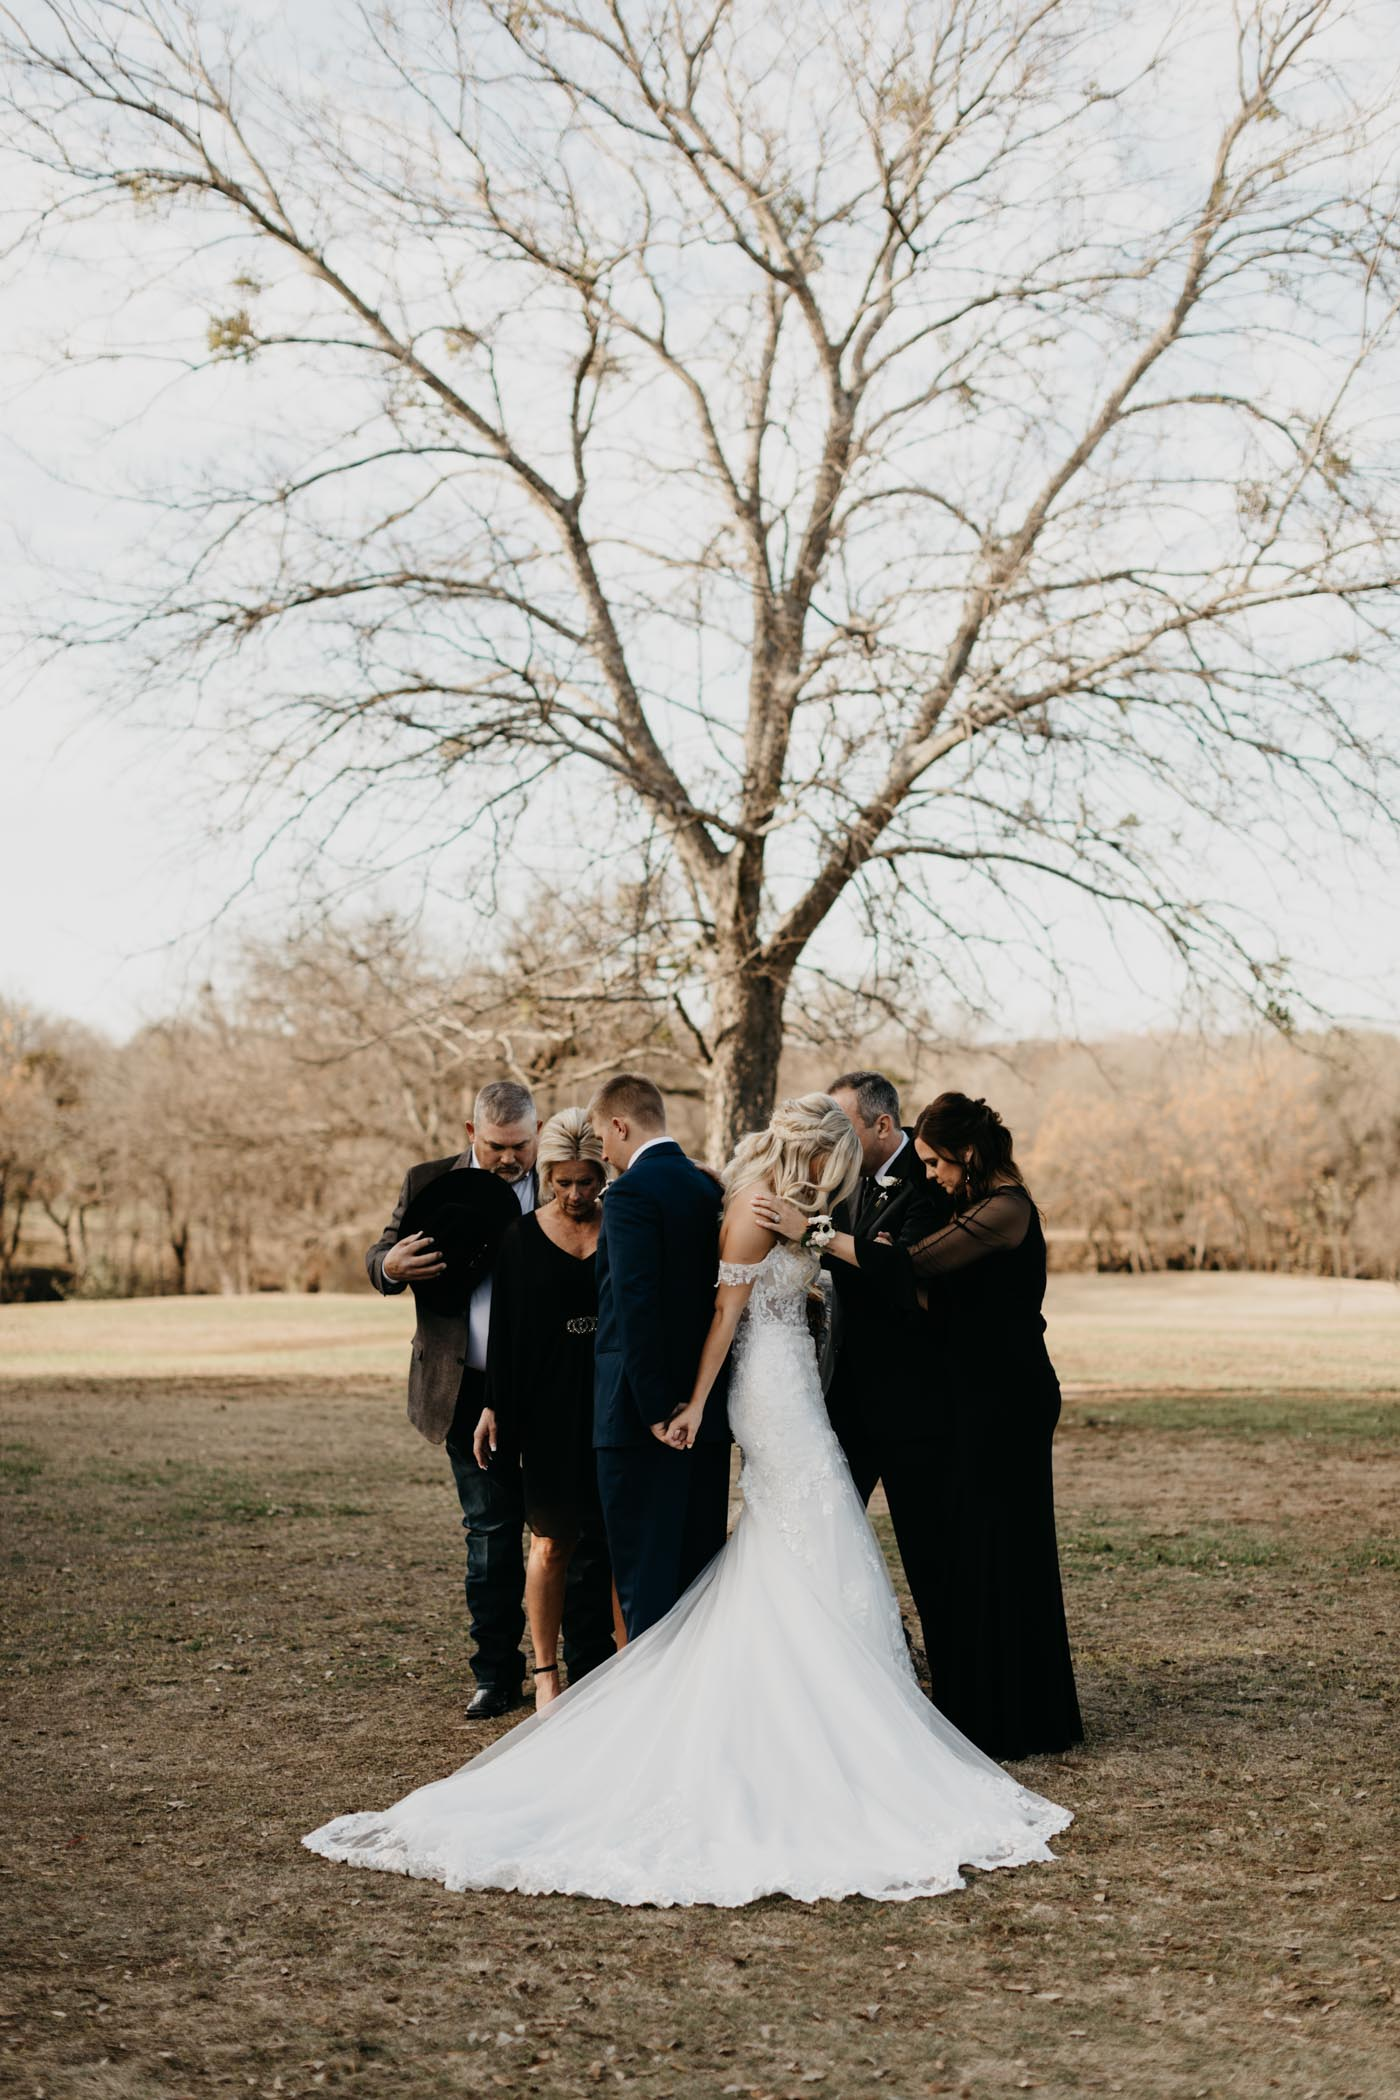 Bride and groom being prayed over before wedding ceremony starts